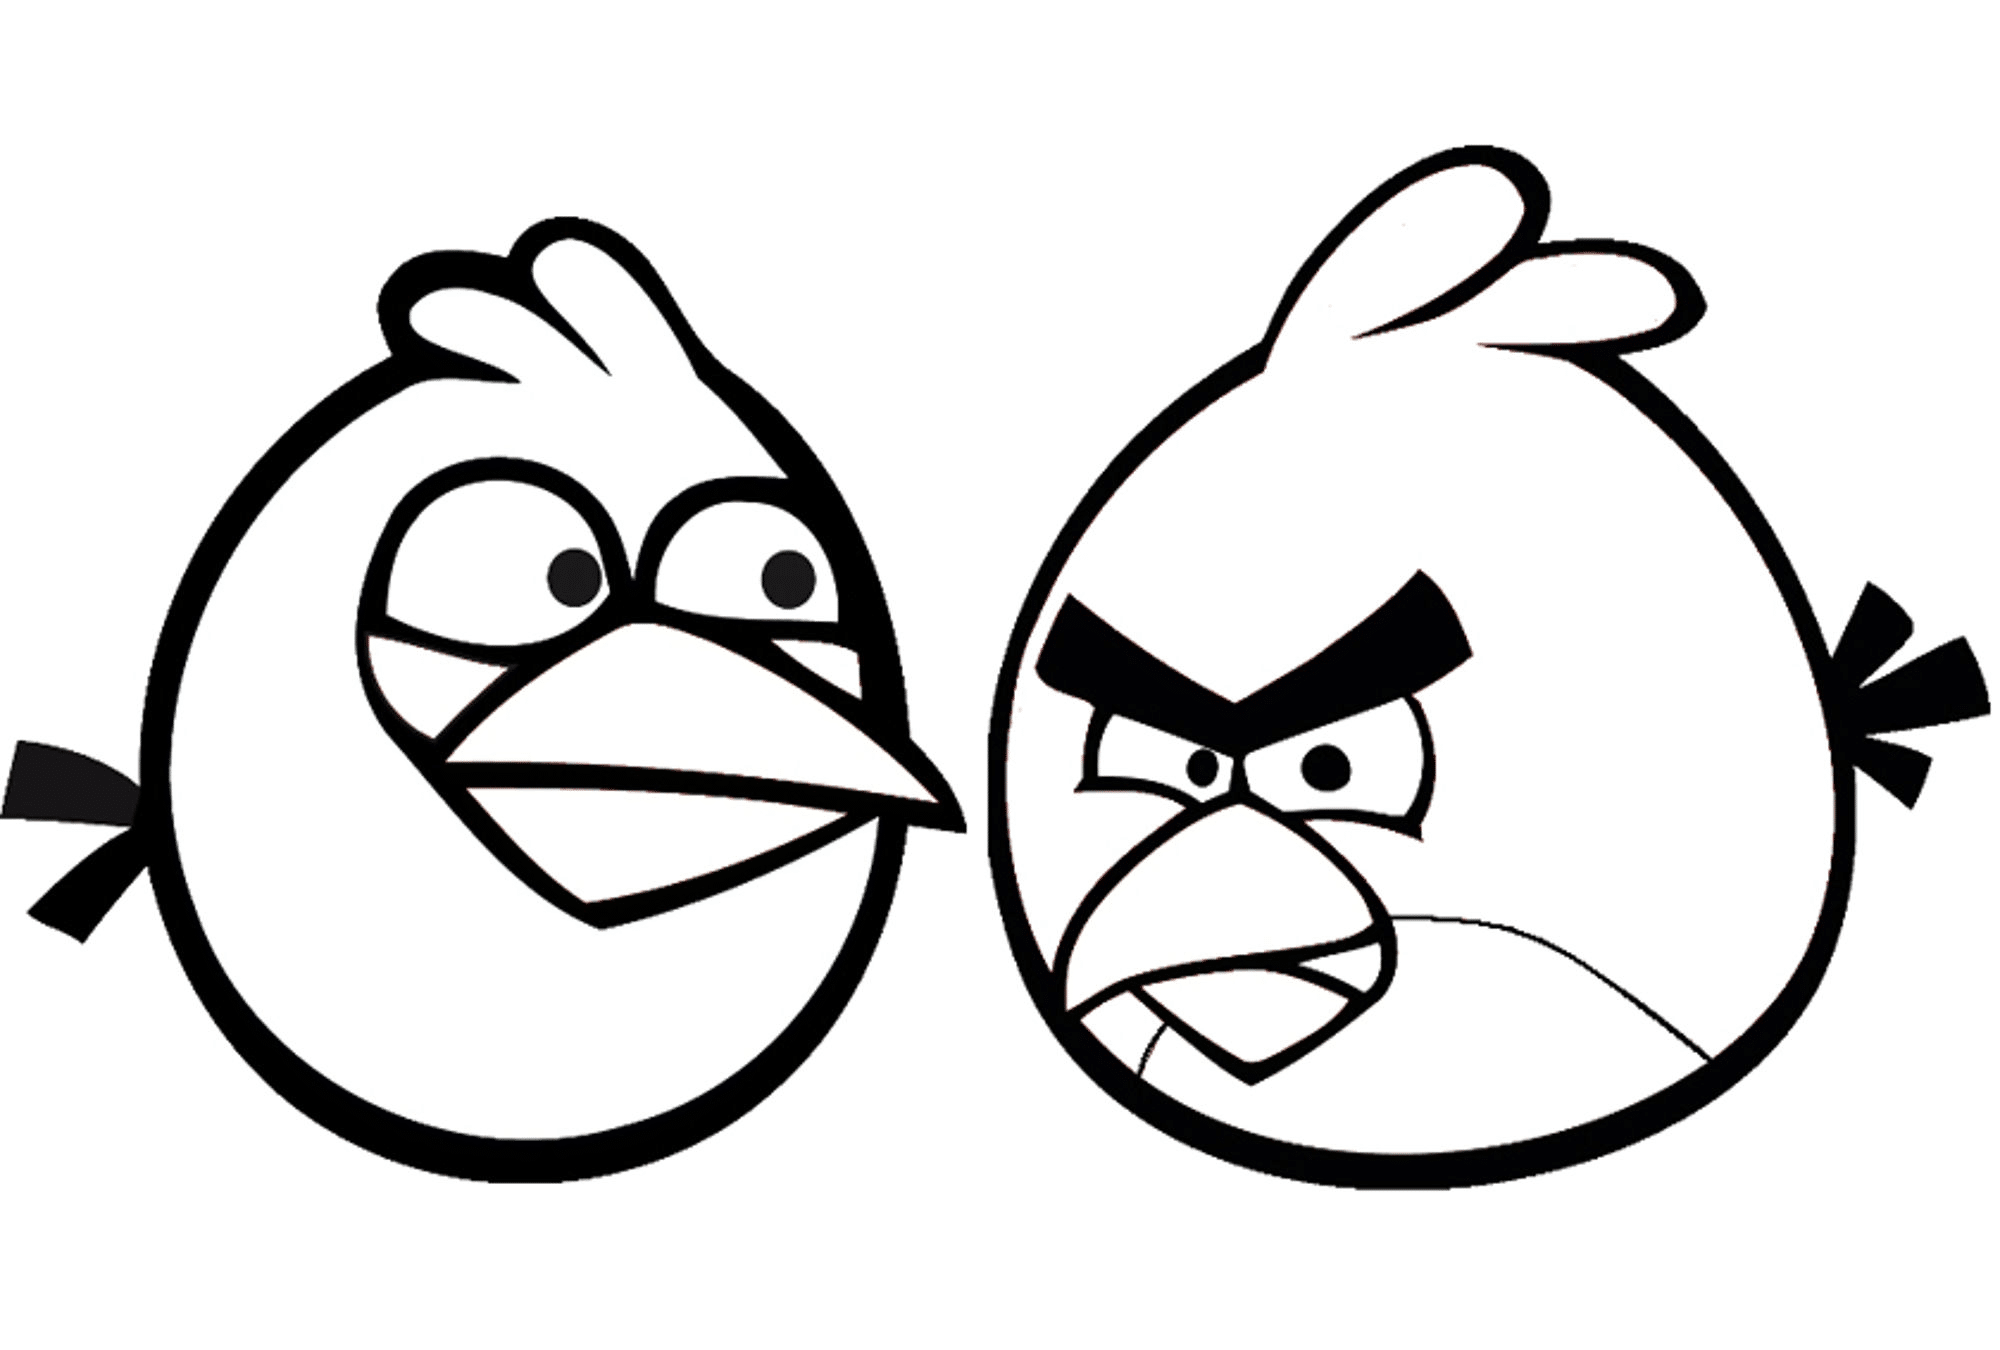 photograph regarding Angry Birds Printable Coloring Pages known as Indignant Birds Coloring Web pages for Your Low Children